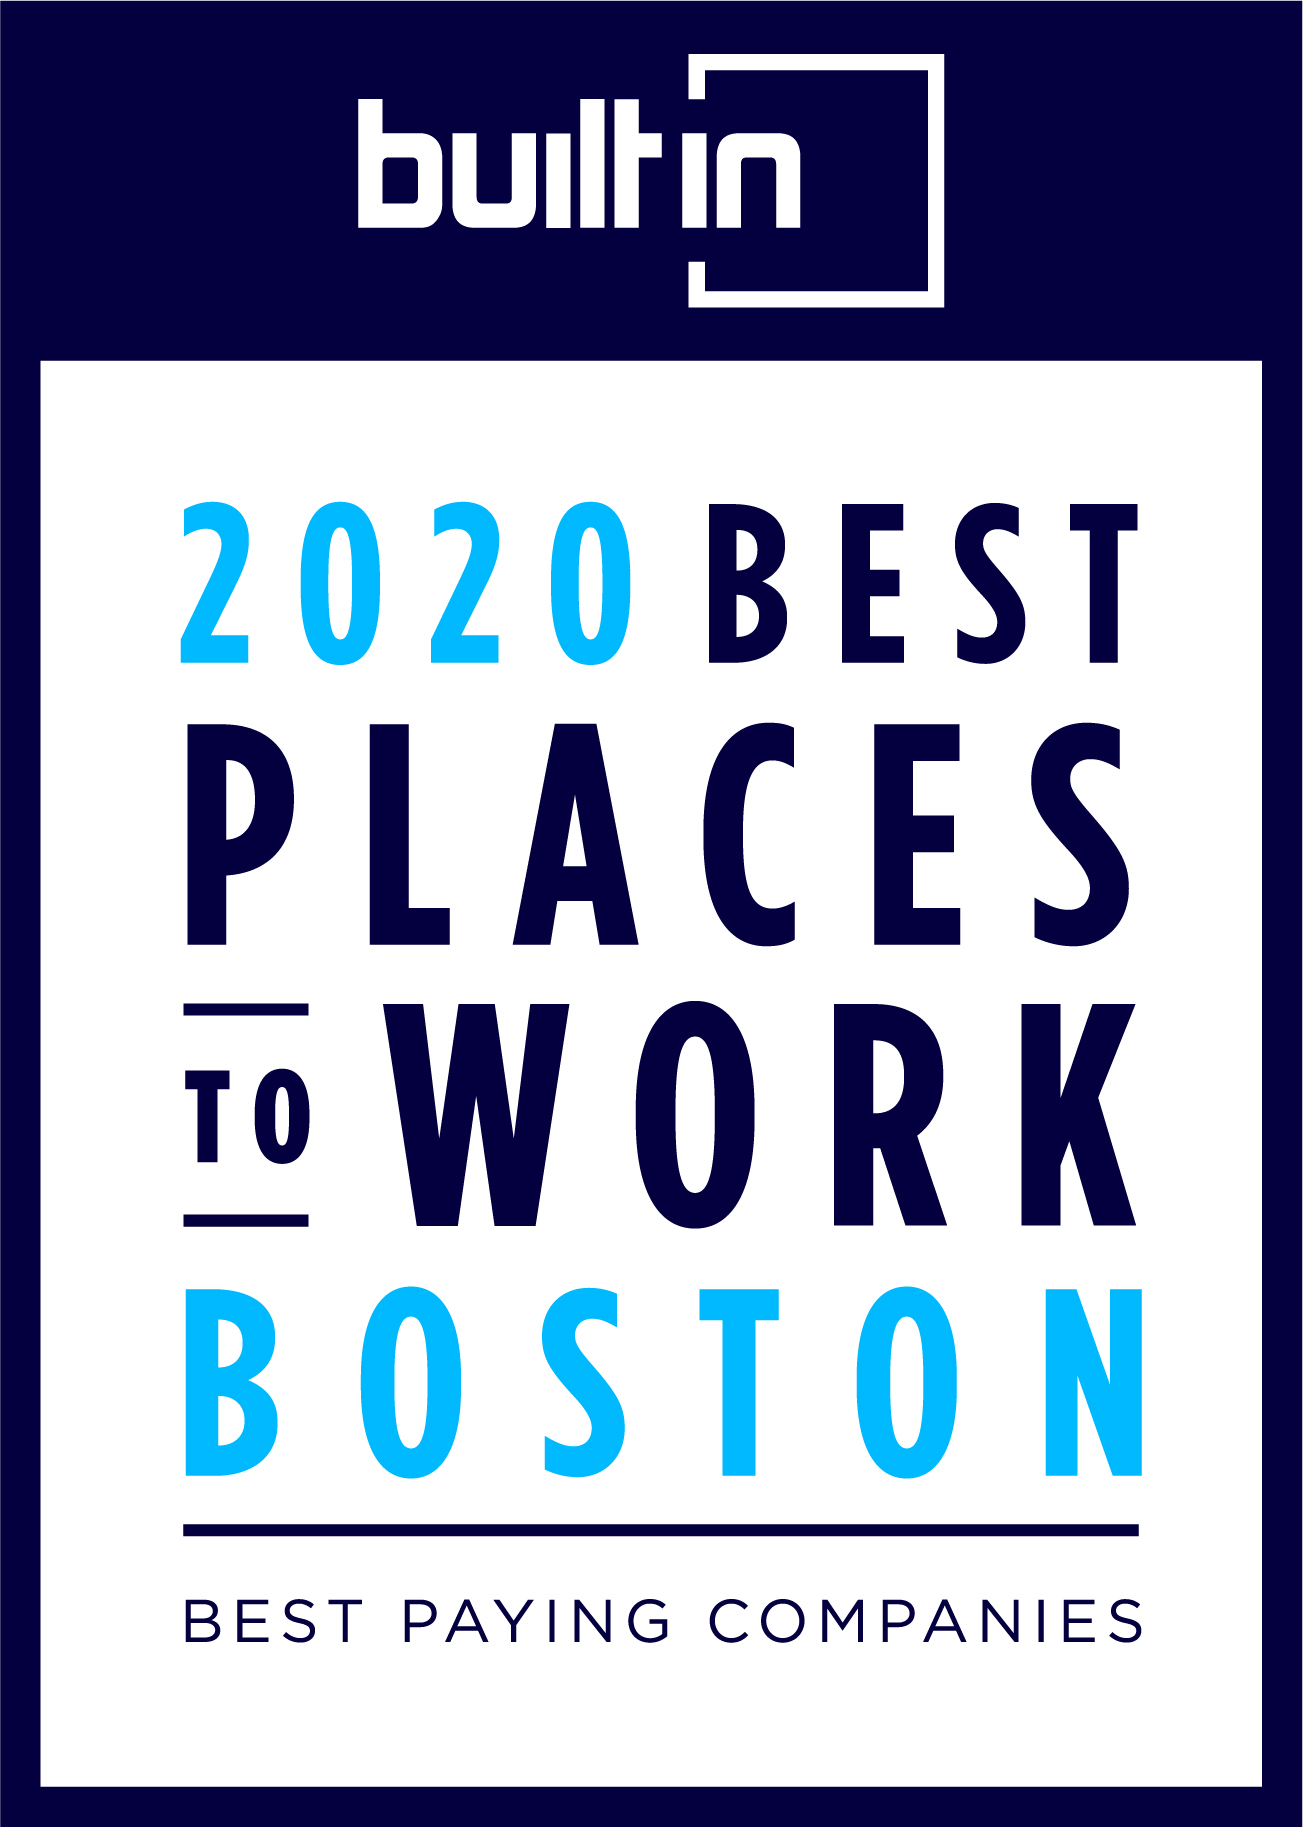 BPTW_Badge_Boston_Vertical.jpg